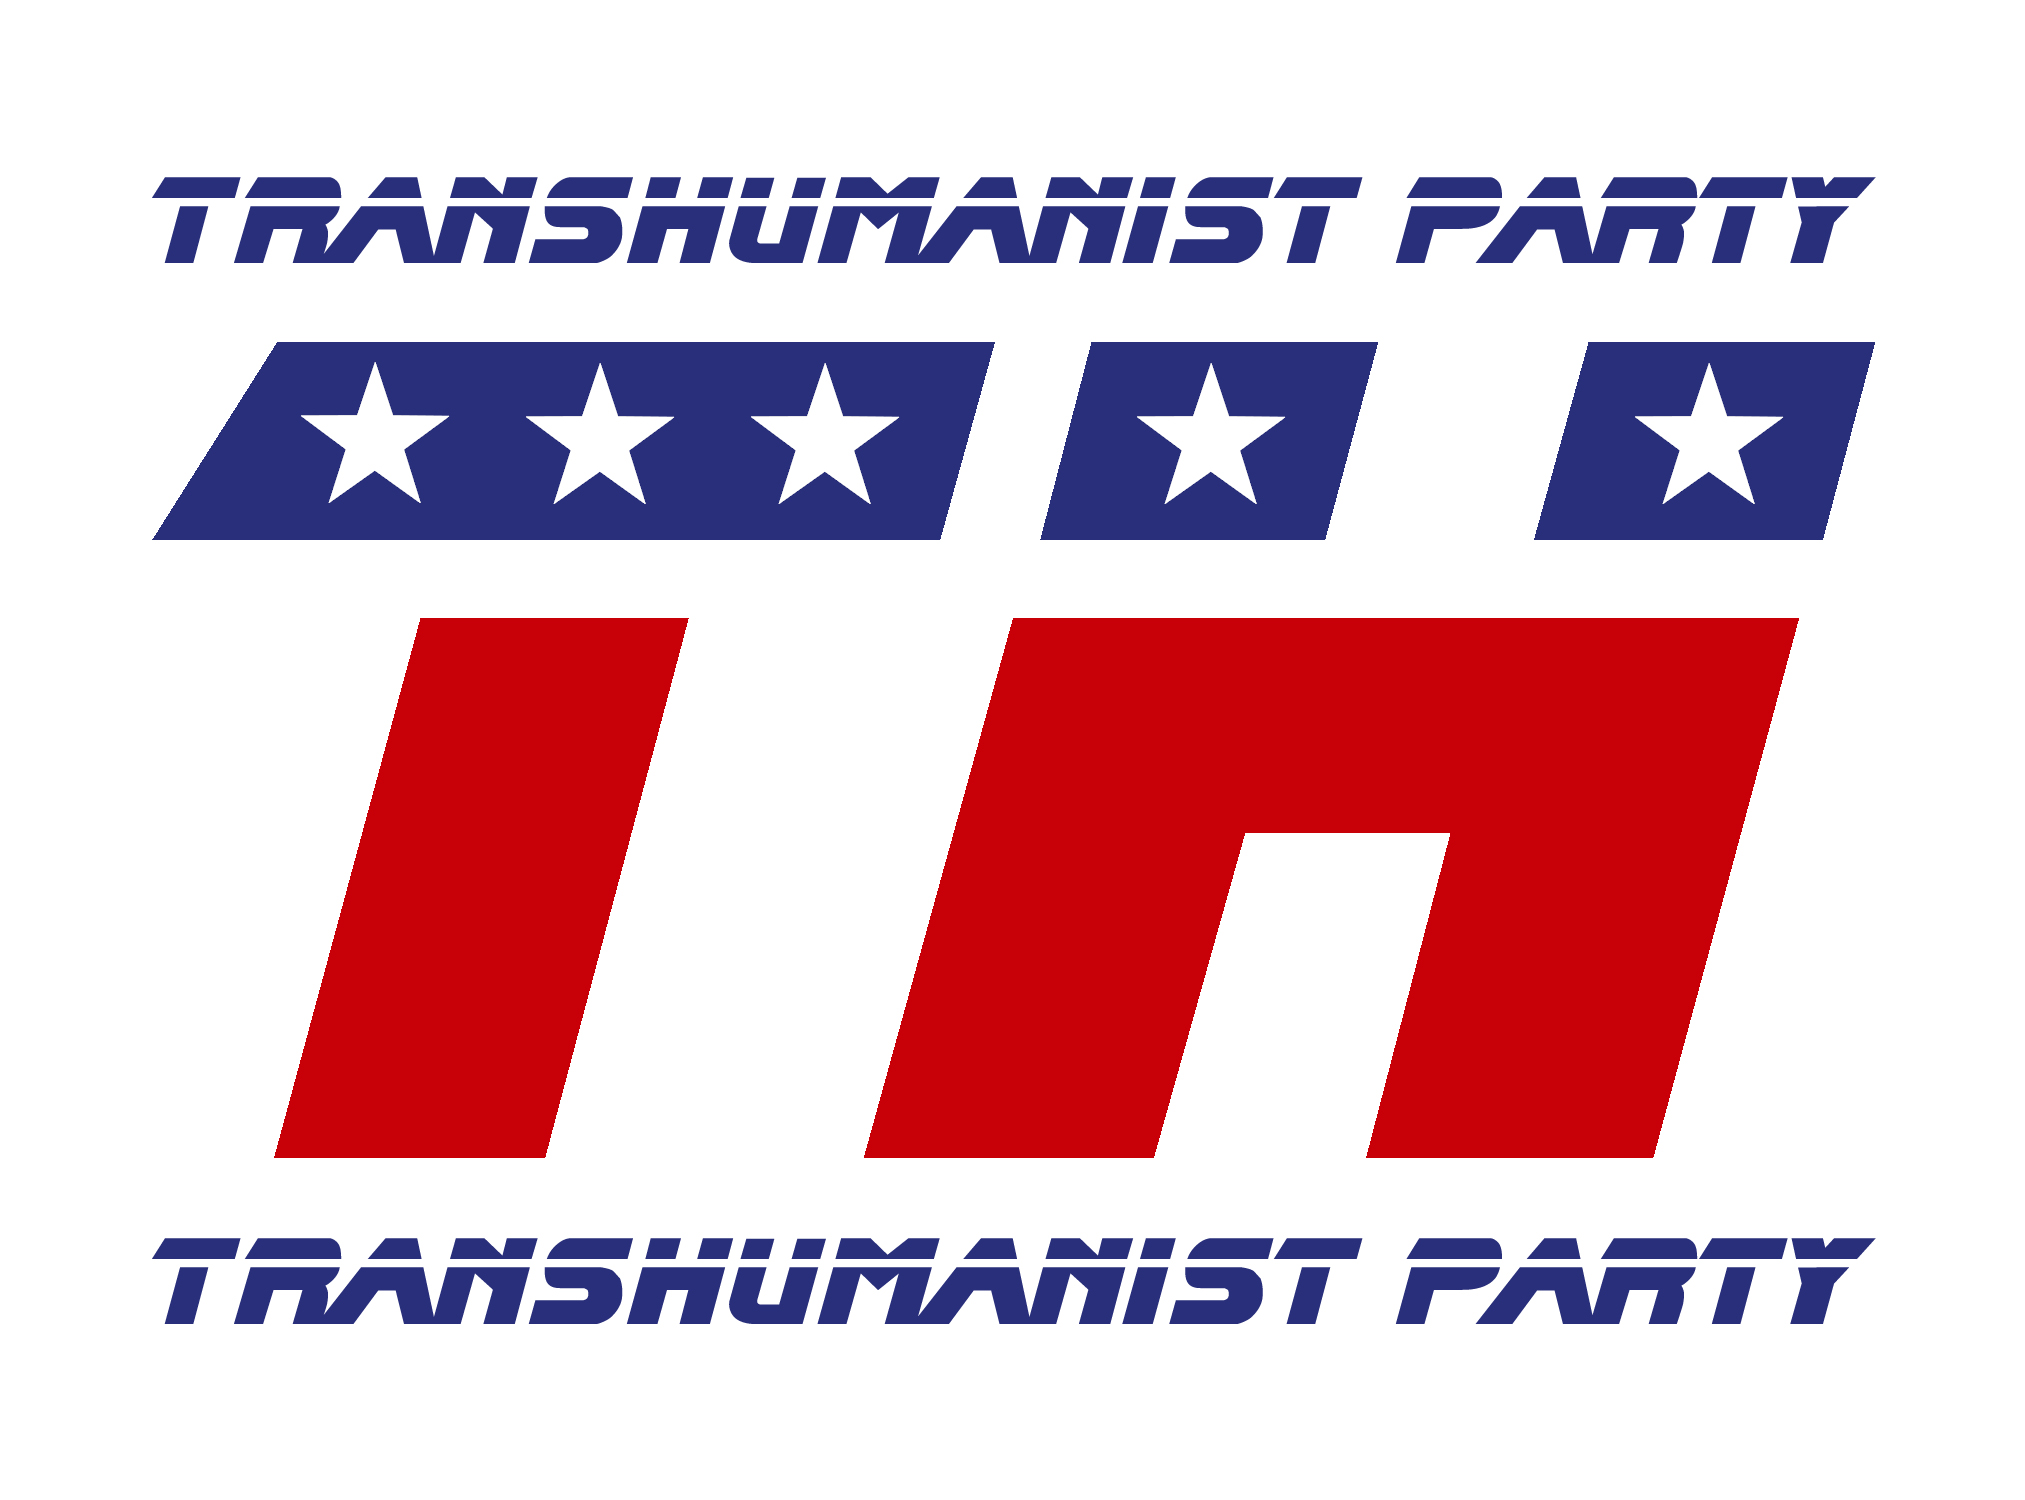 Transhumanist Party Logo - United States Theme - by Kevin D. Blackmon